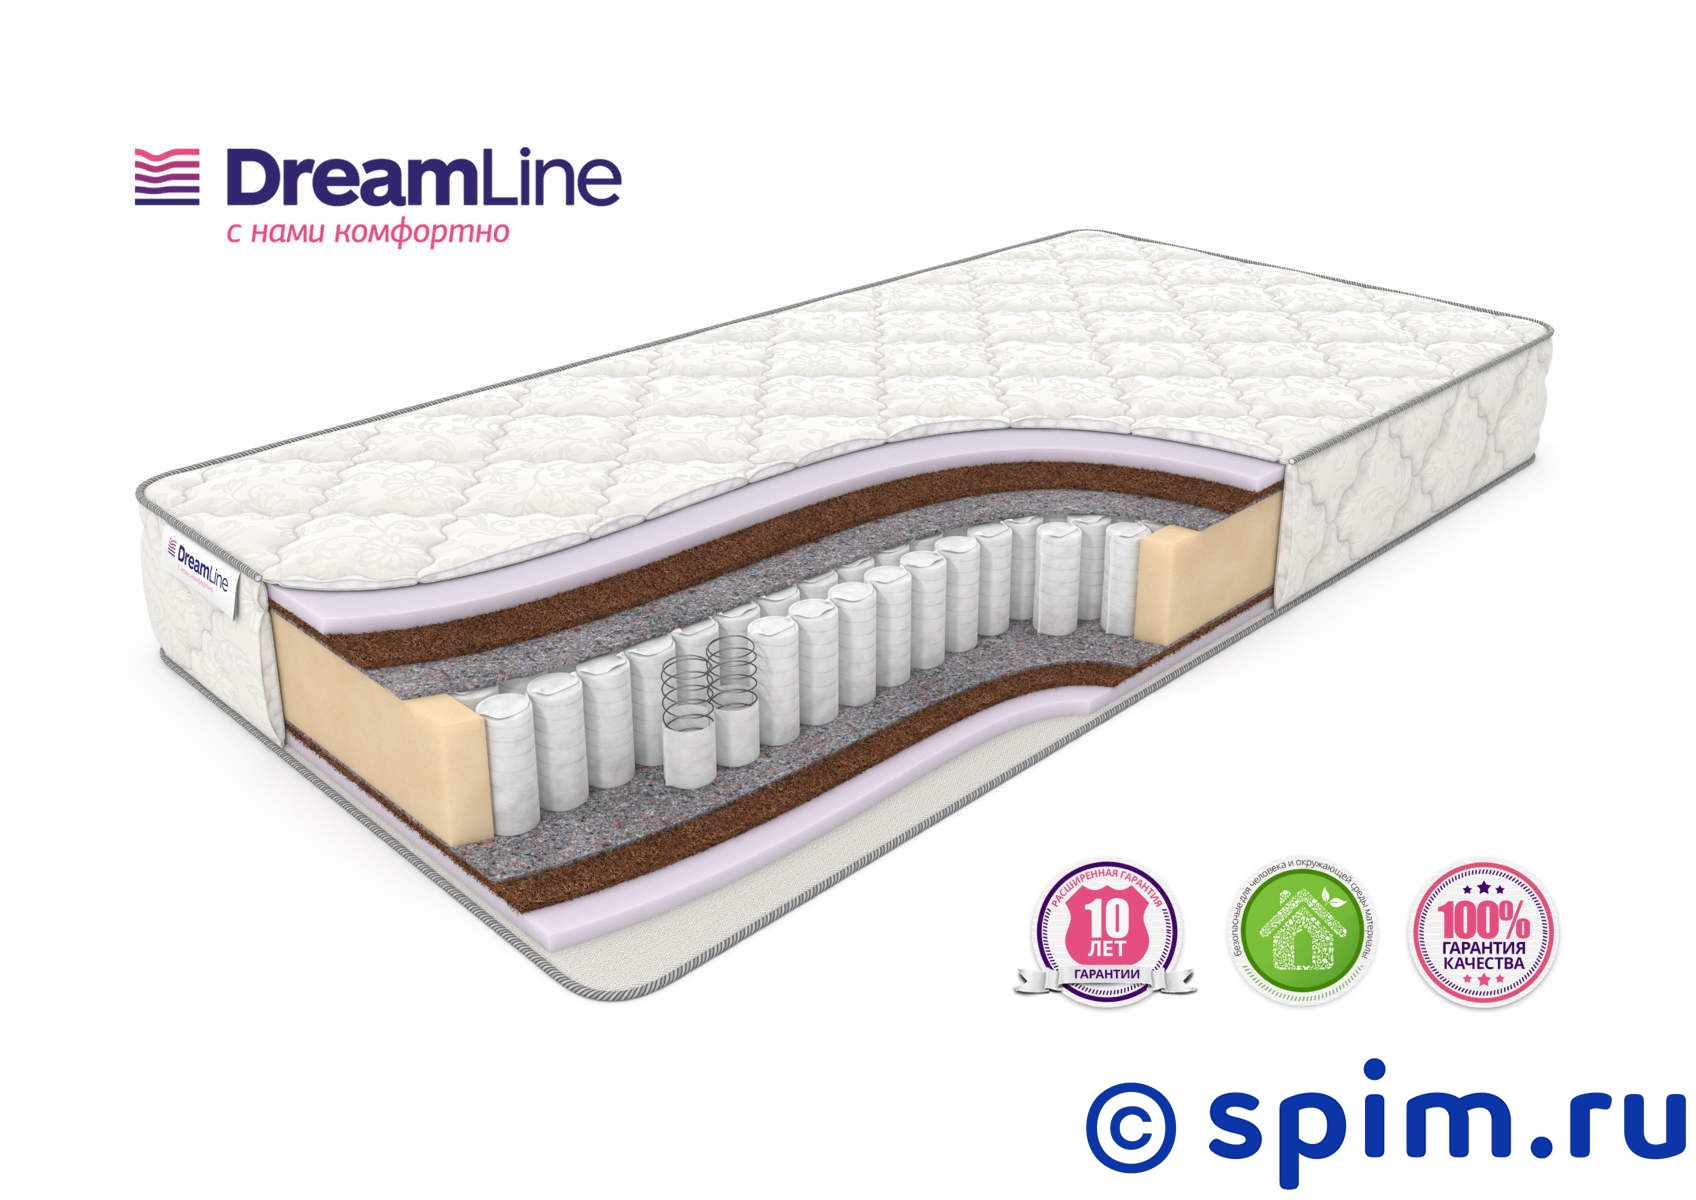 Матрас DreamLine Eco Foam Hard Tfk 150х190 см